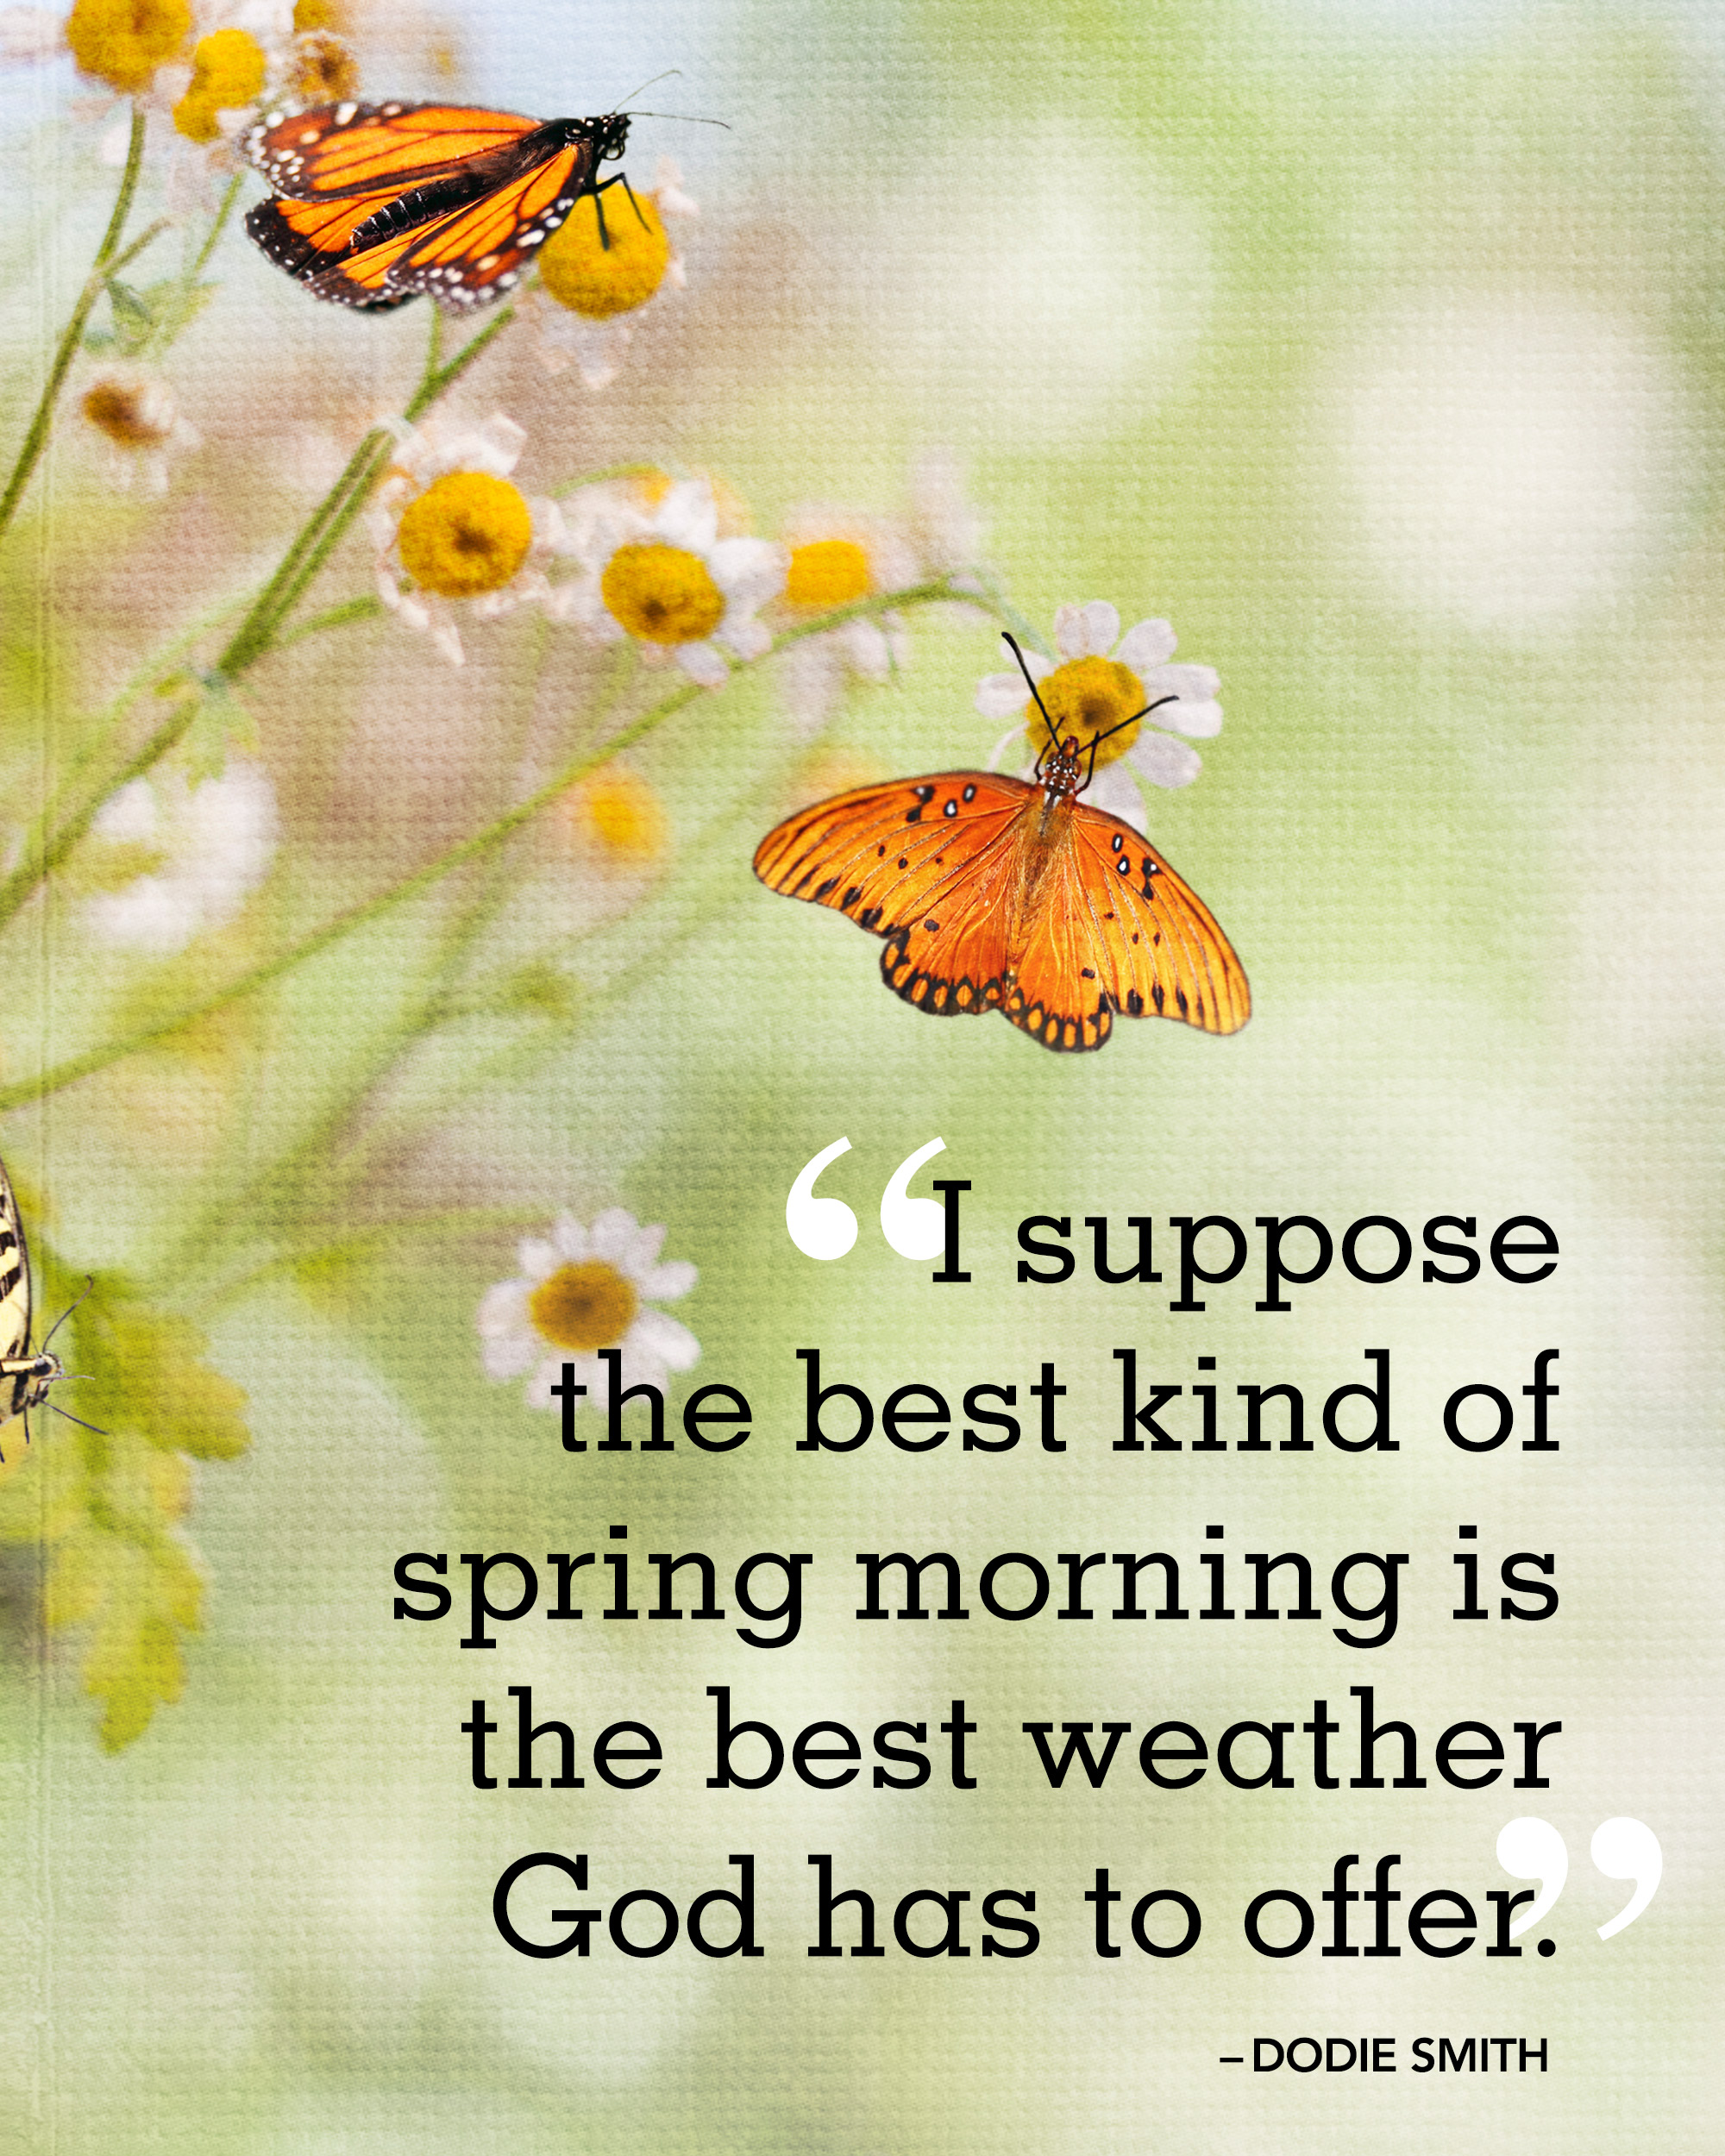 Seasons Of Life Quotes 26 Spring Quotes  Life Quotes & Humor